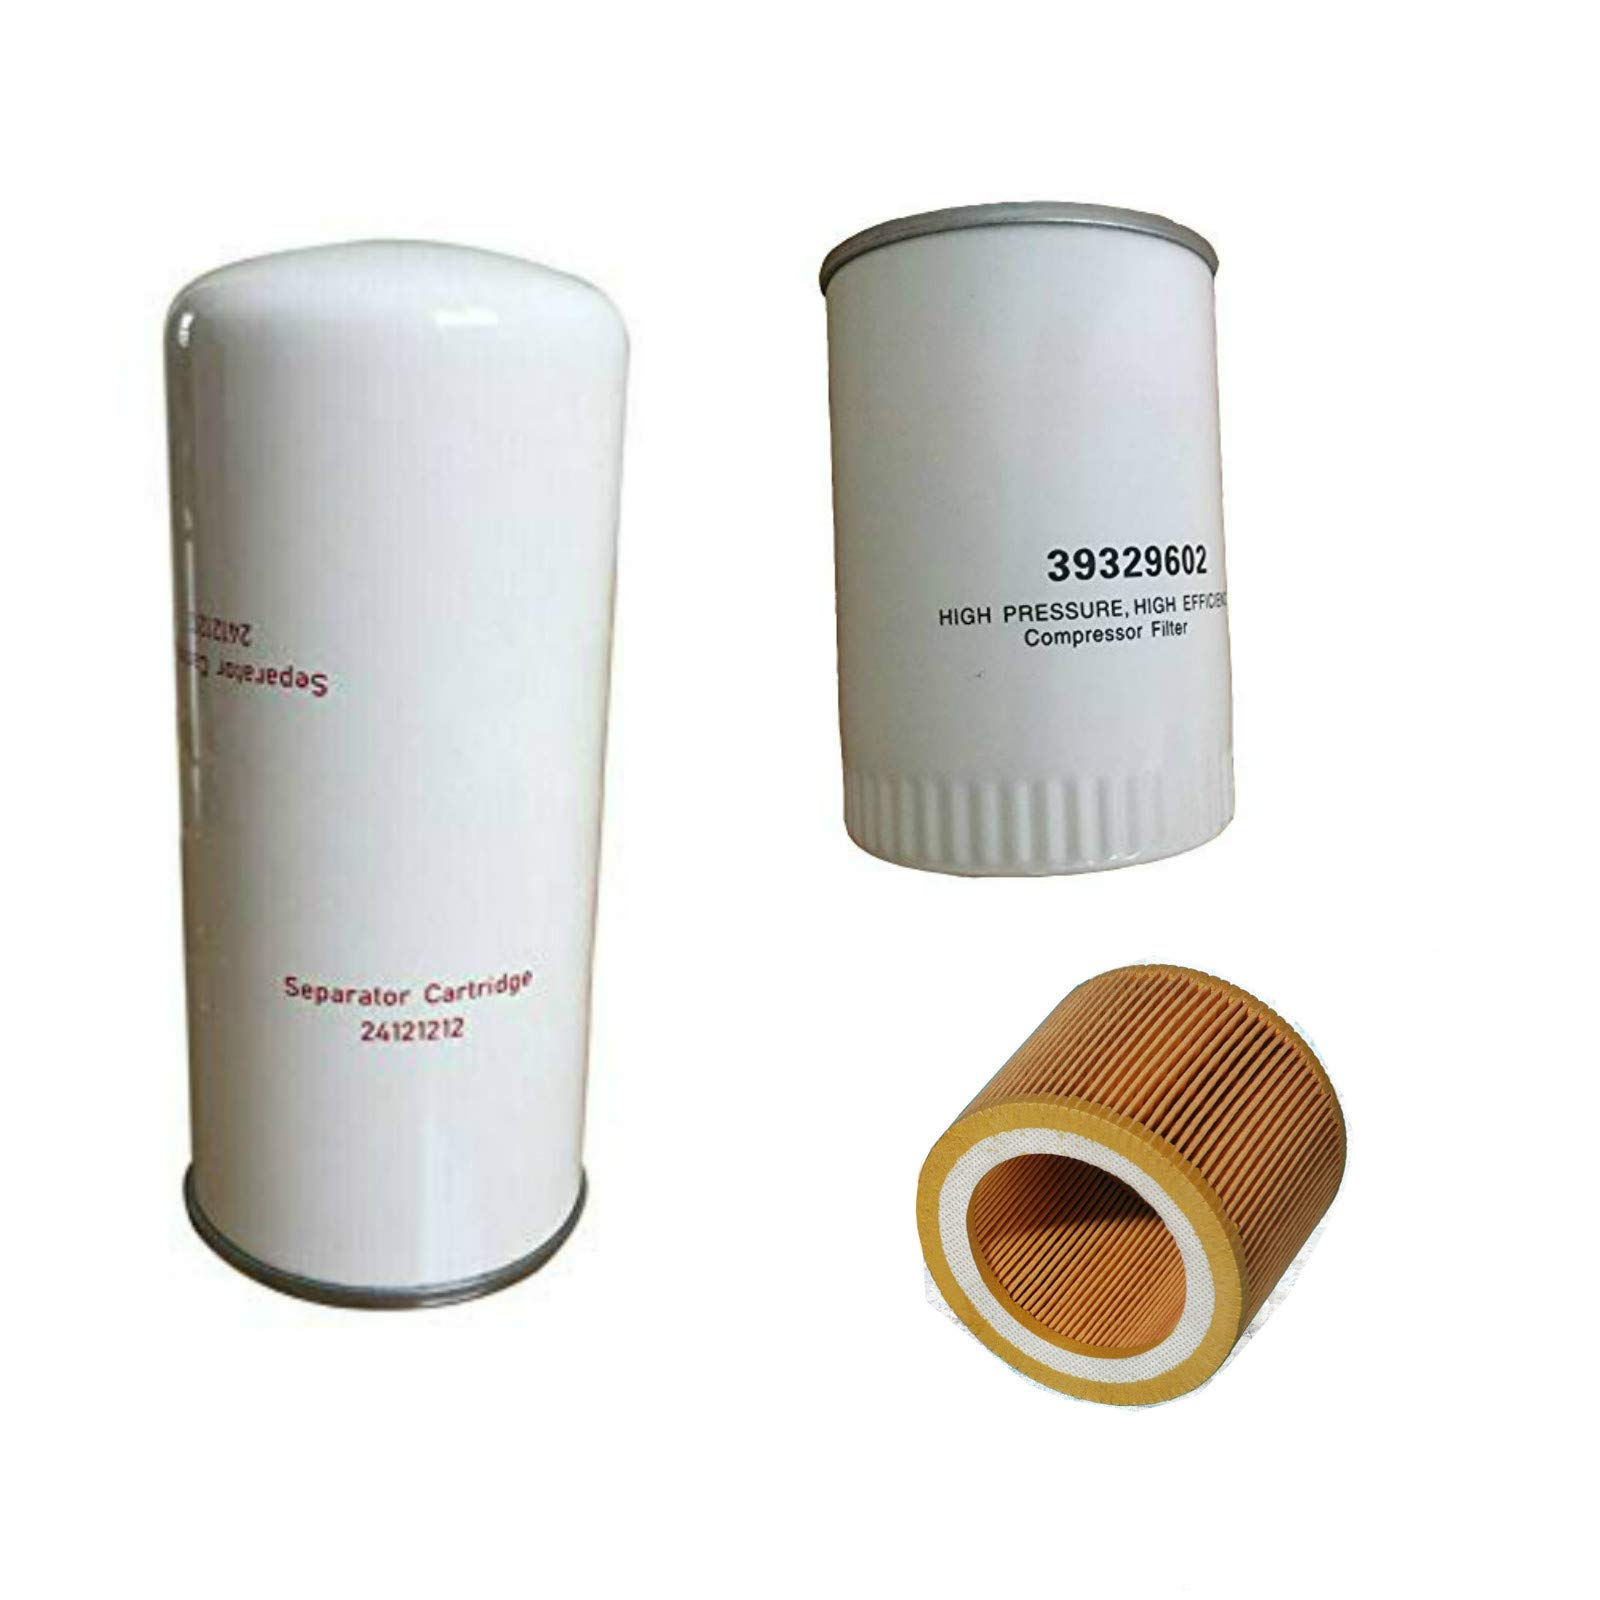 24121212 Air Oil Filter Kit 39329602 for Ingersoll Rand Compressor Maintenance kit 88171913 UP5 by FILME